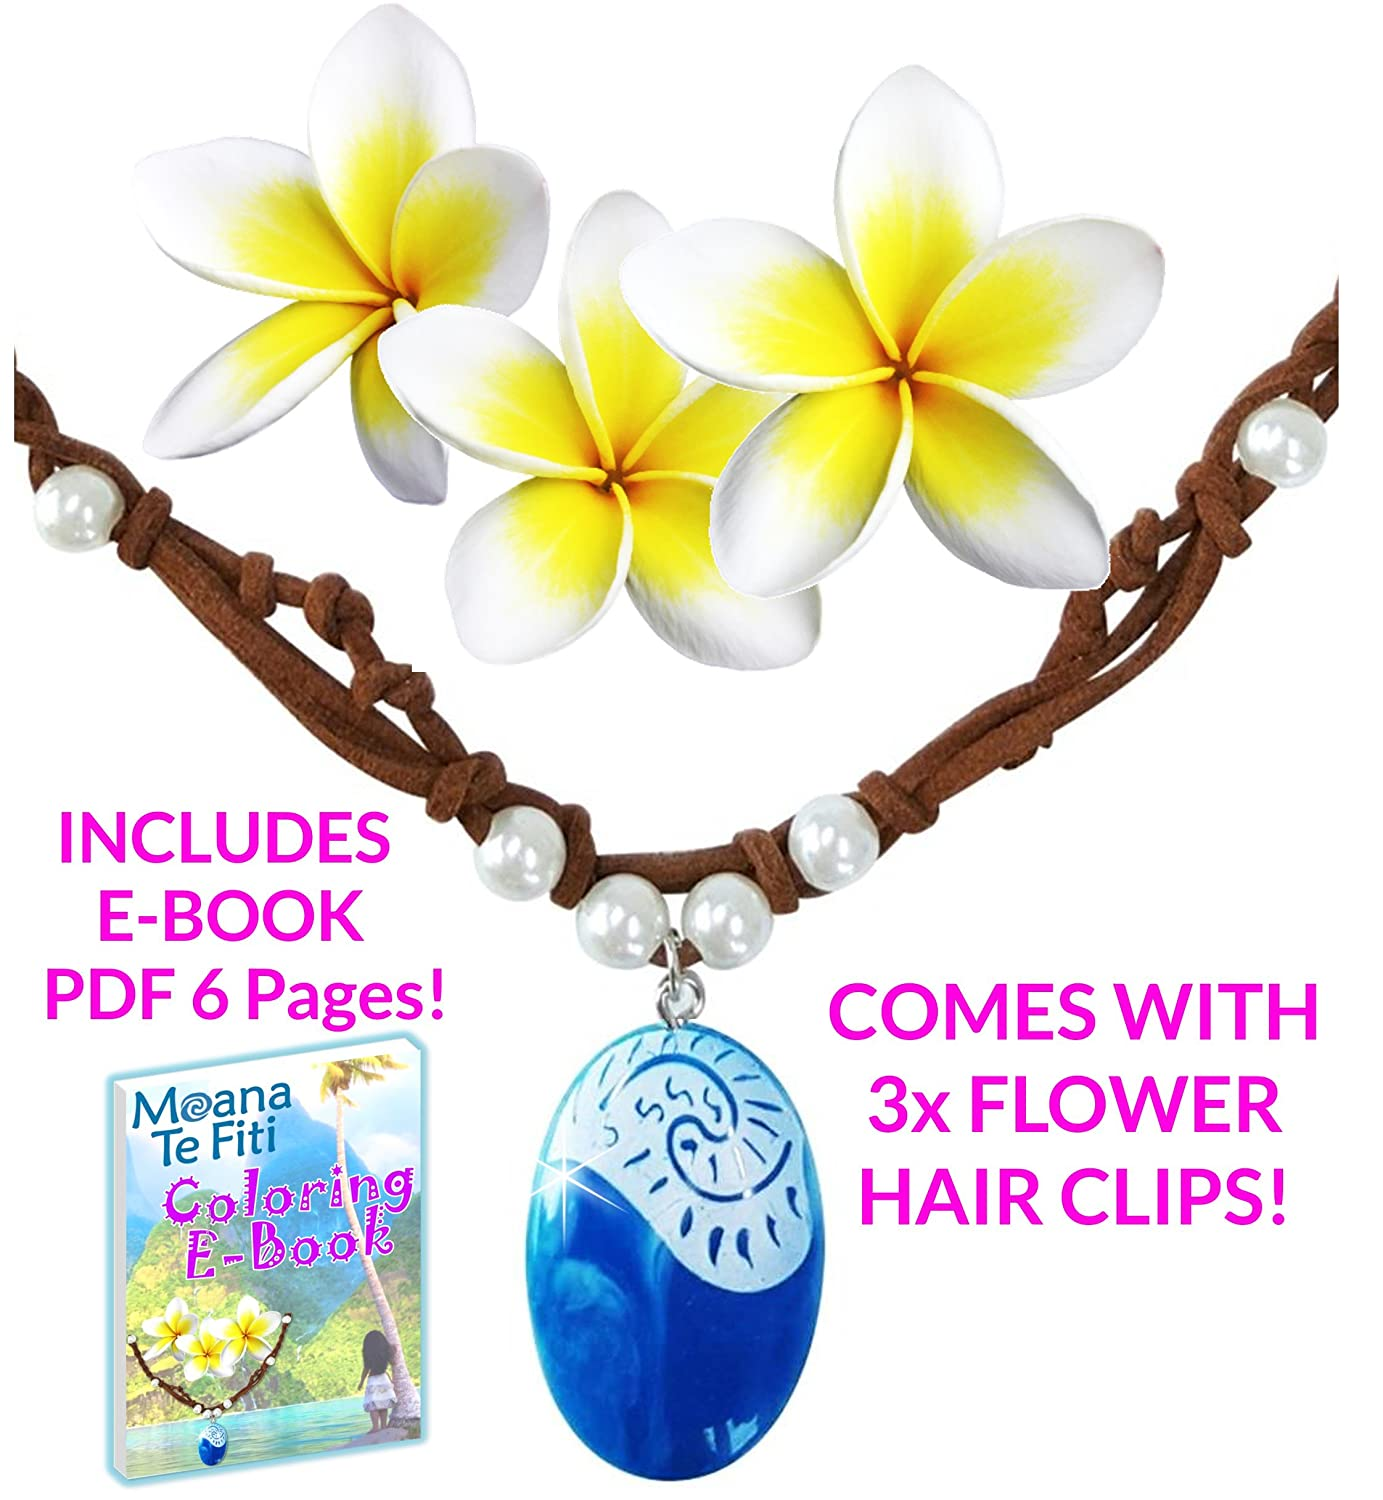 Moana Necklace Disney Heart Of Te Fiti Costume Accessories Movie Gift For Girls   Includes 3 Flower Hair Clips & E Book   Leather, Pearl, Children Kids Toys Princess Birthday Party Favors Cosplay by Princess Charms